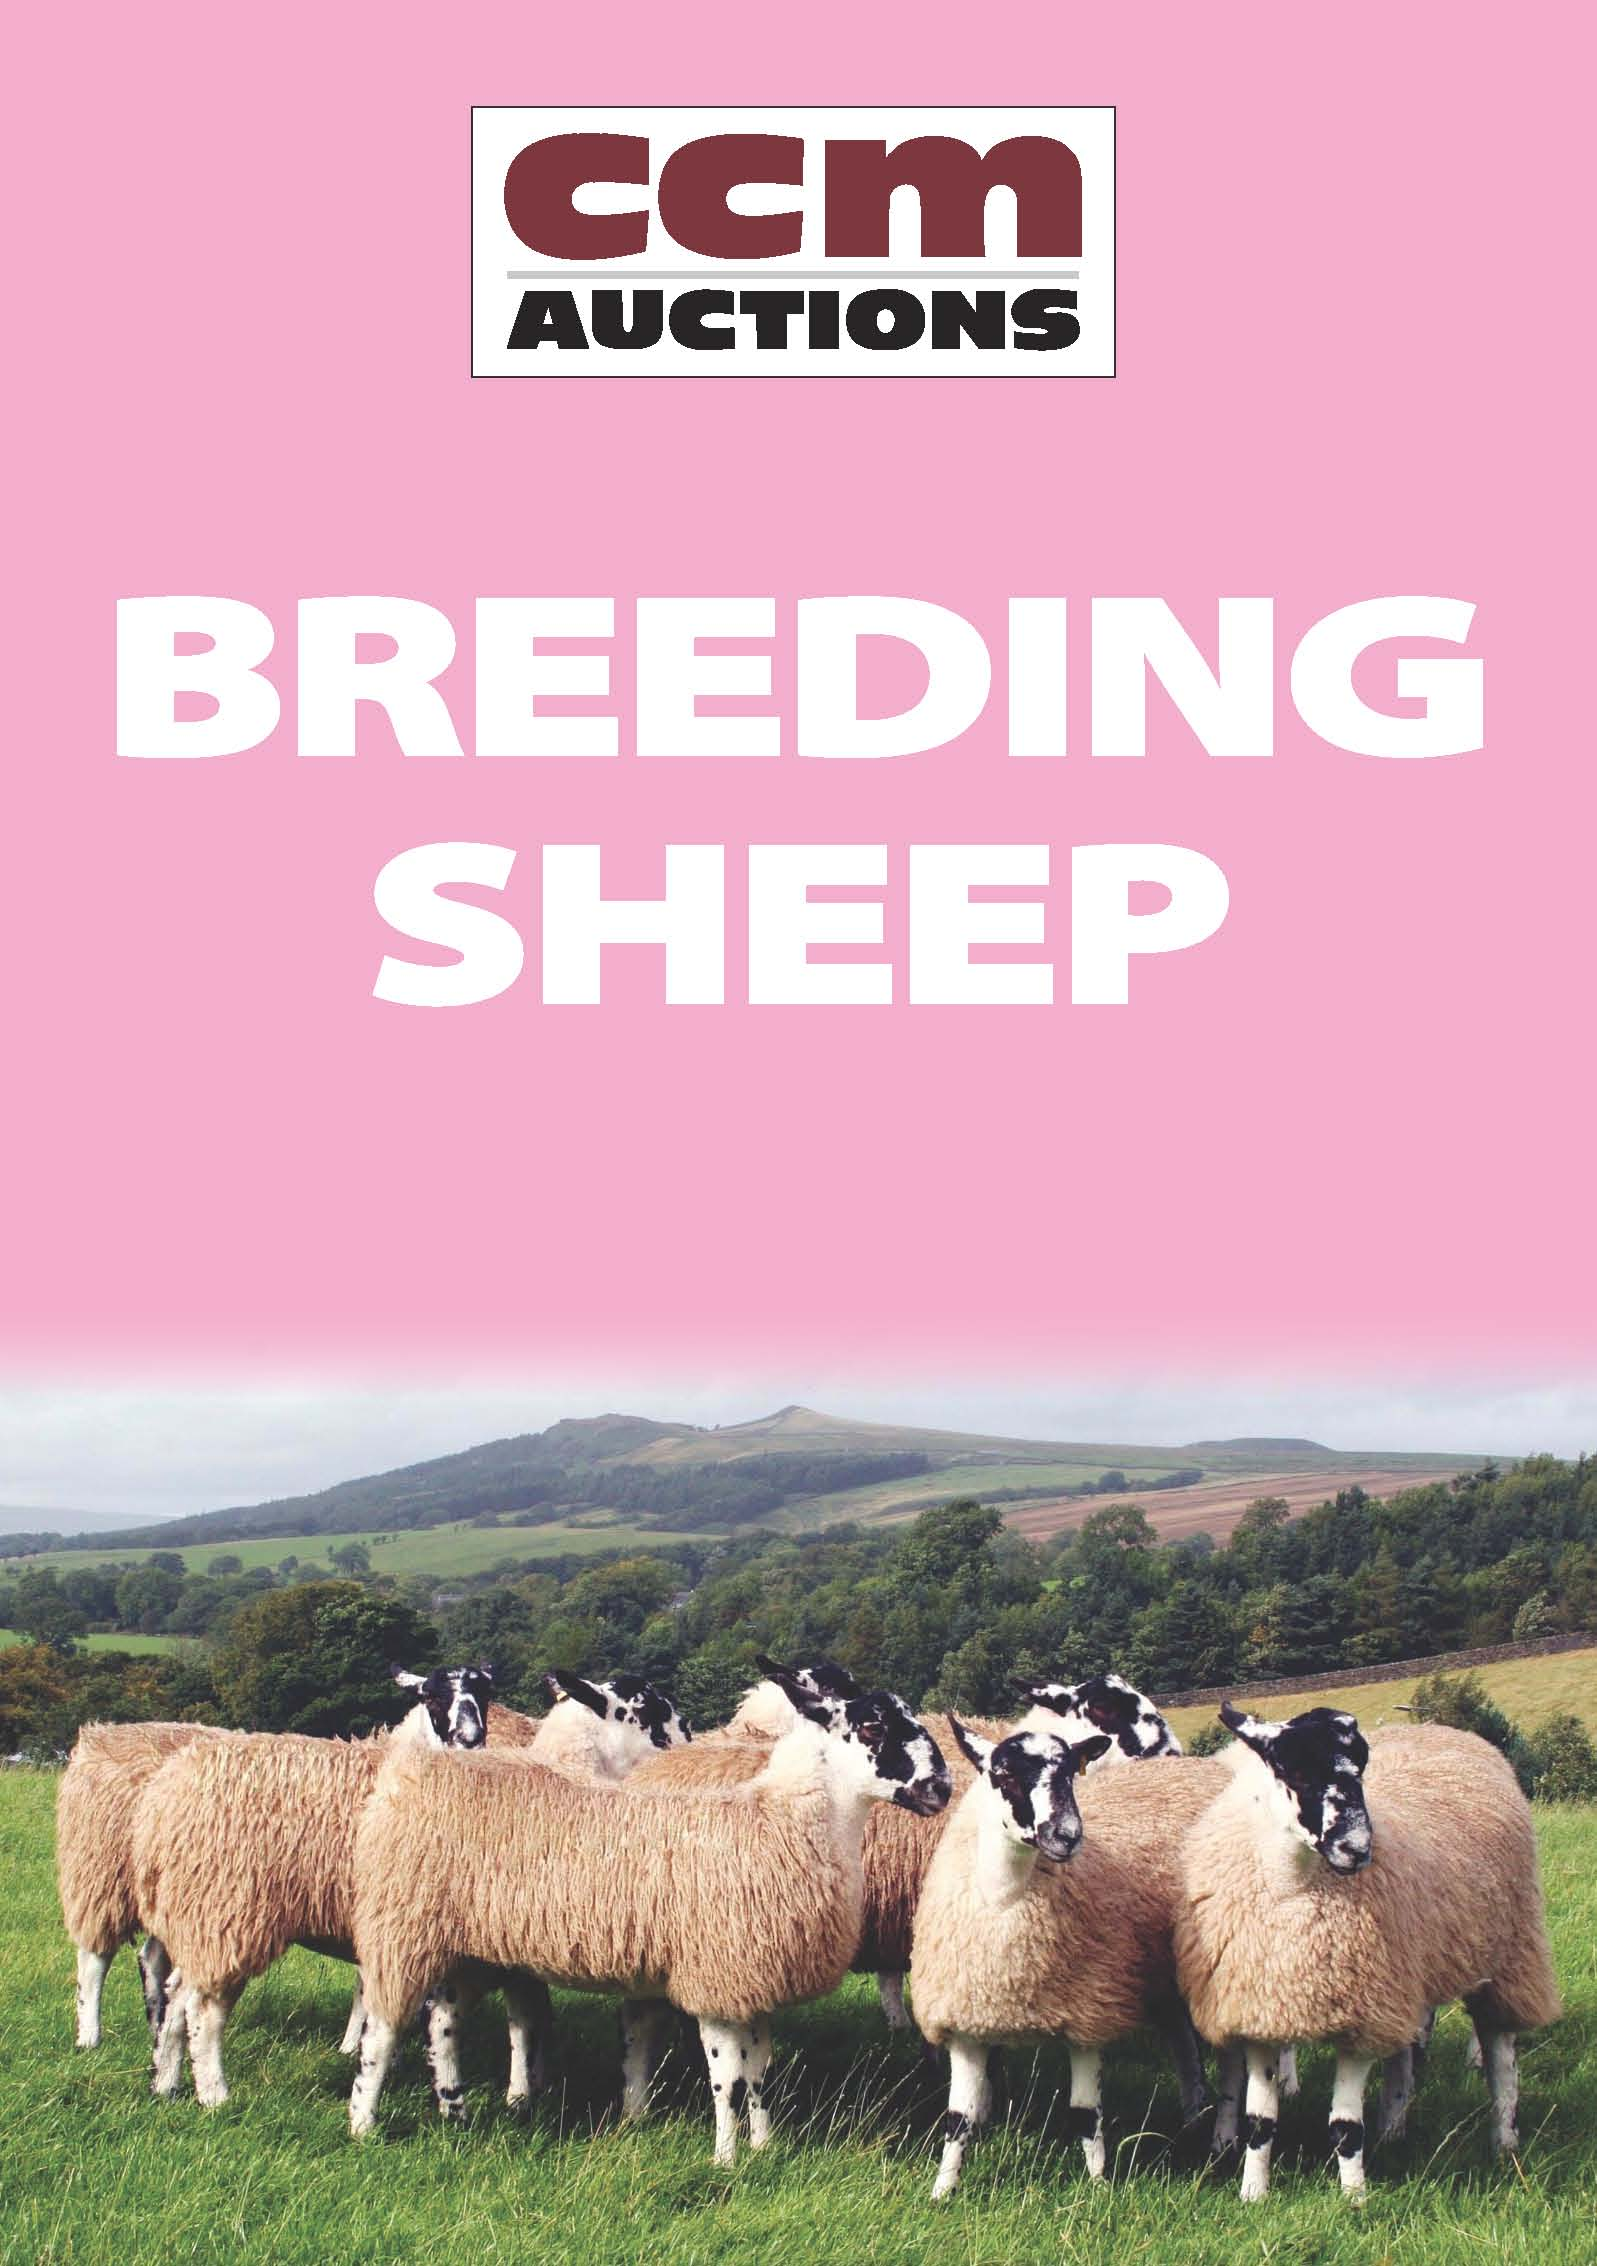 BREEDING SHEEP - TUESDAY 13TH OCTOBER 2015